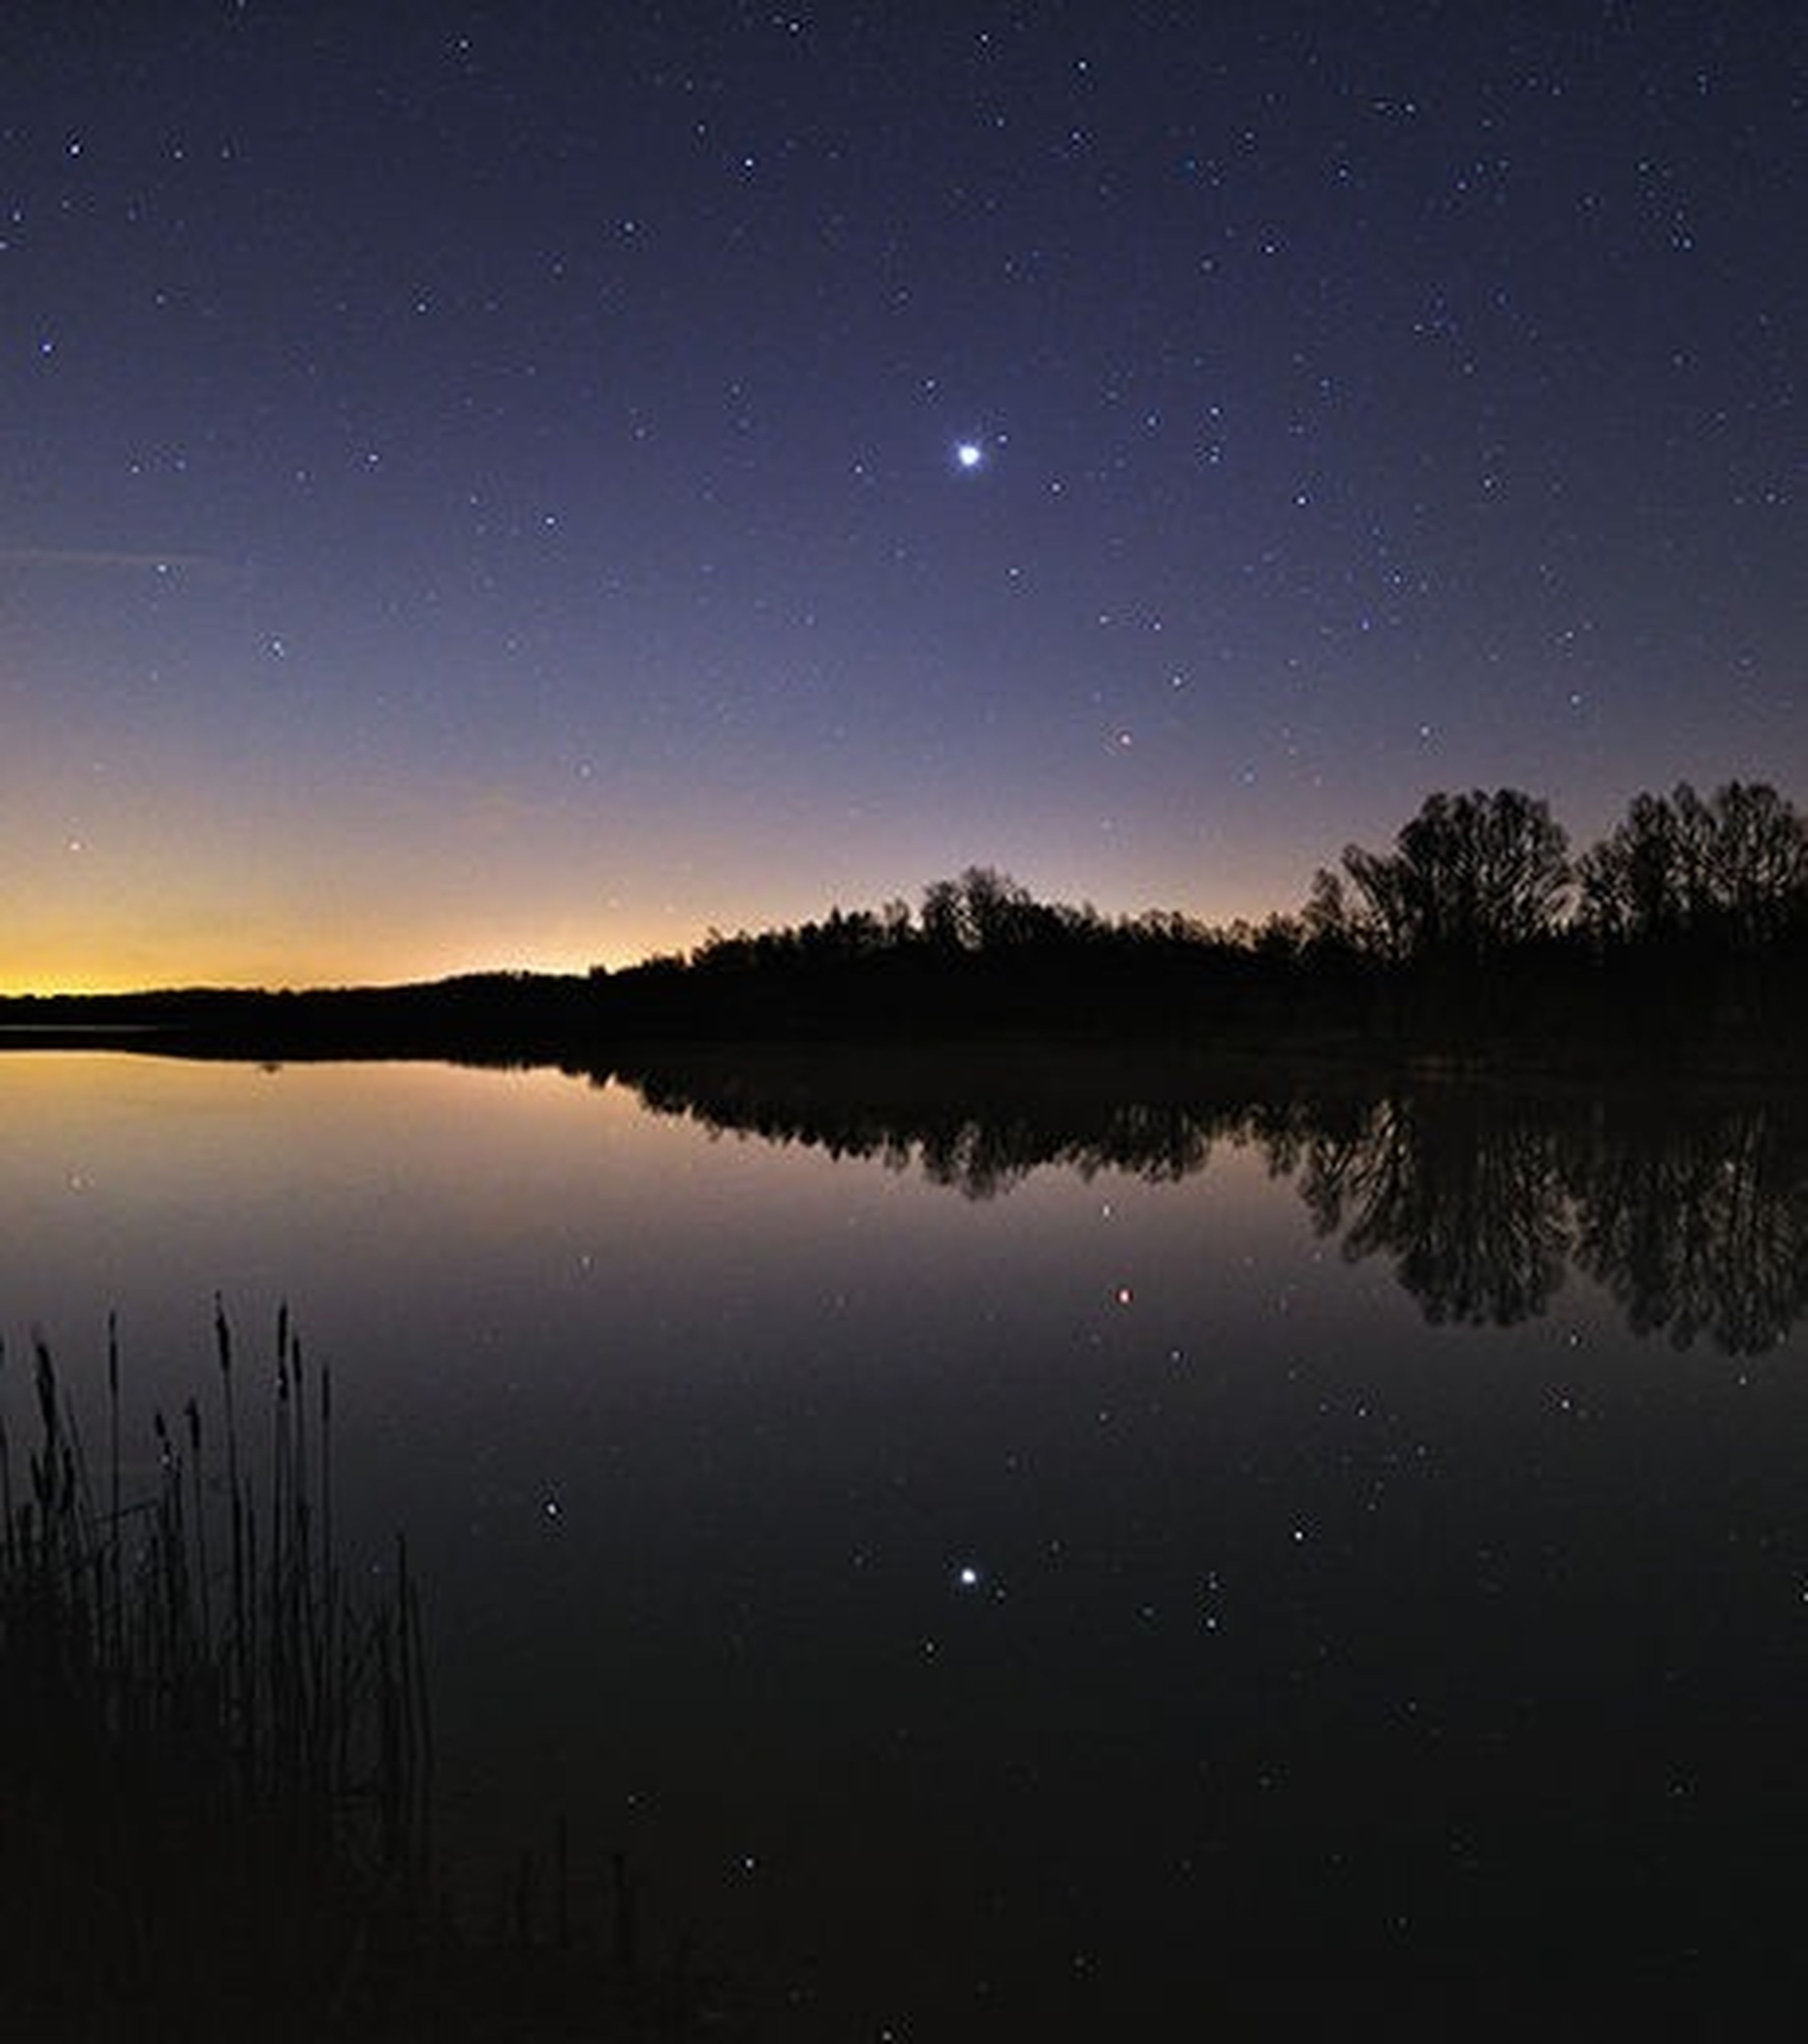 tranquil scene, scenics, tranquility, night, beauty in nature, reflection, lake, water, star - space, nature, sky, idyllic, astronomy, silhouette, star field, majestic, tree, clear sky, standing water, moon